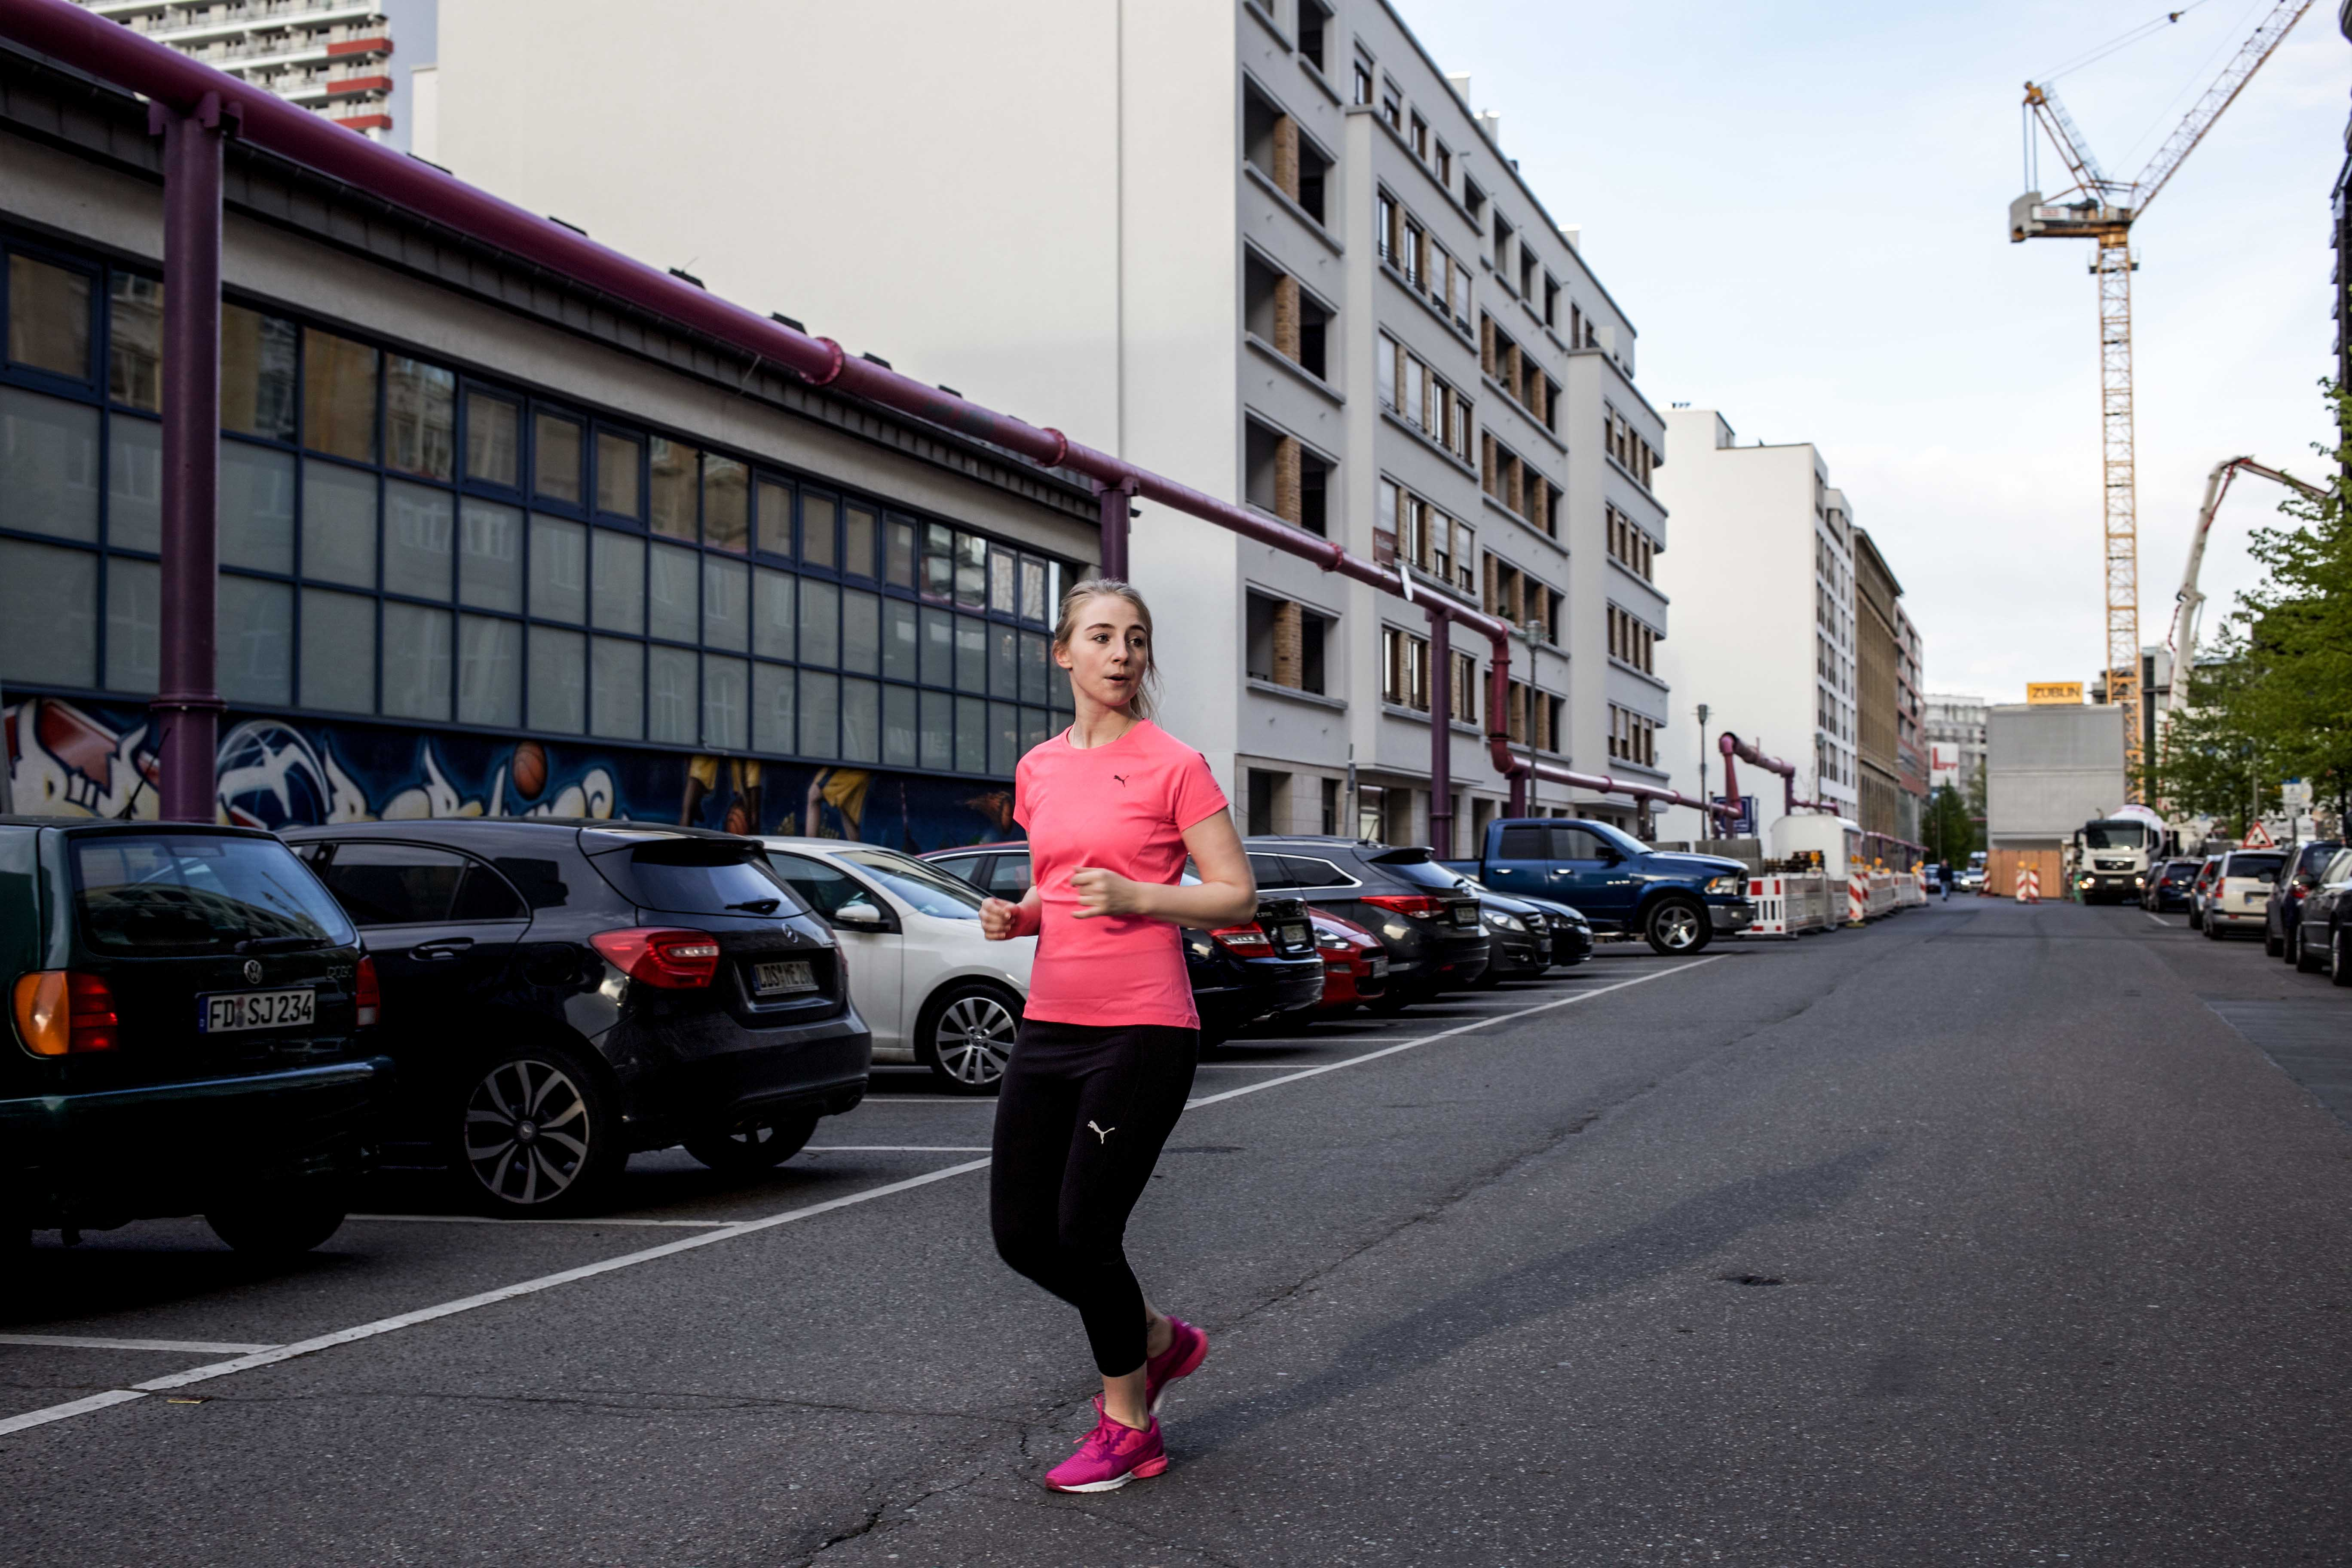 puma-lauf-outfit-laufen-tipps-joggen-mode-fitness-gym-workout-sport_8320